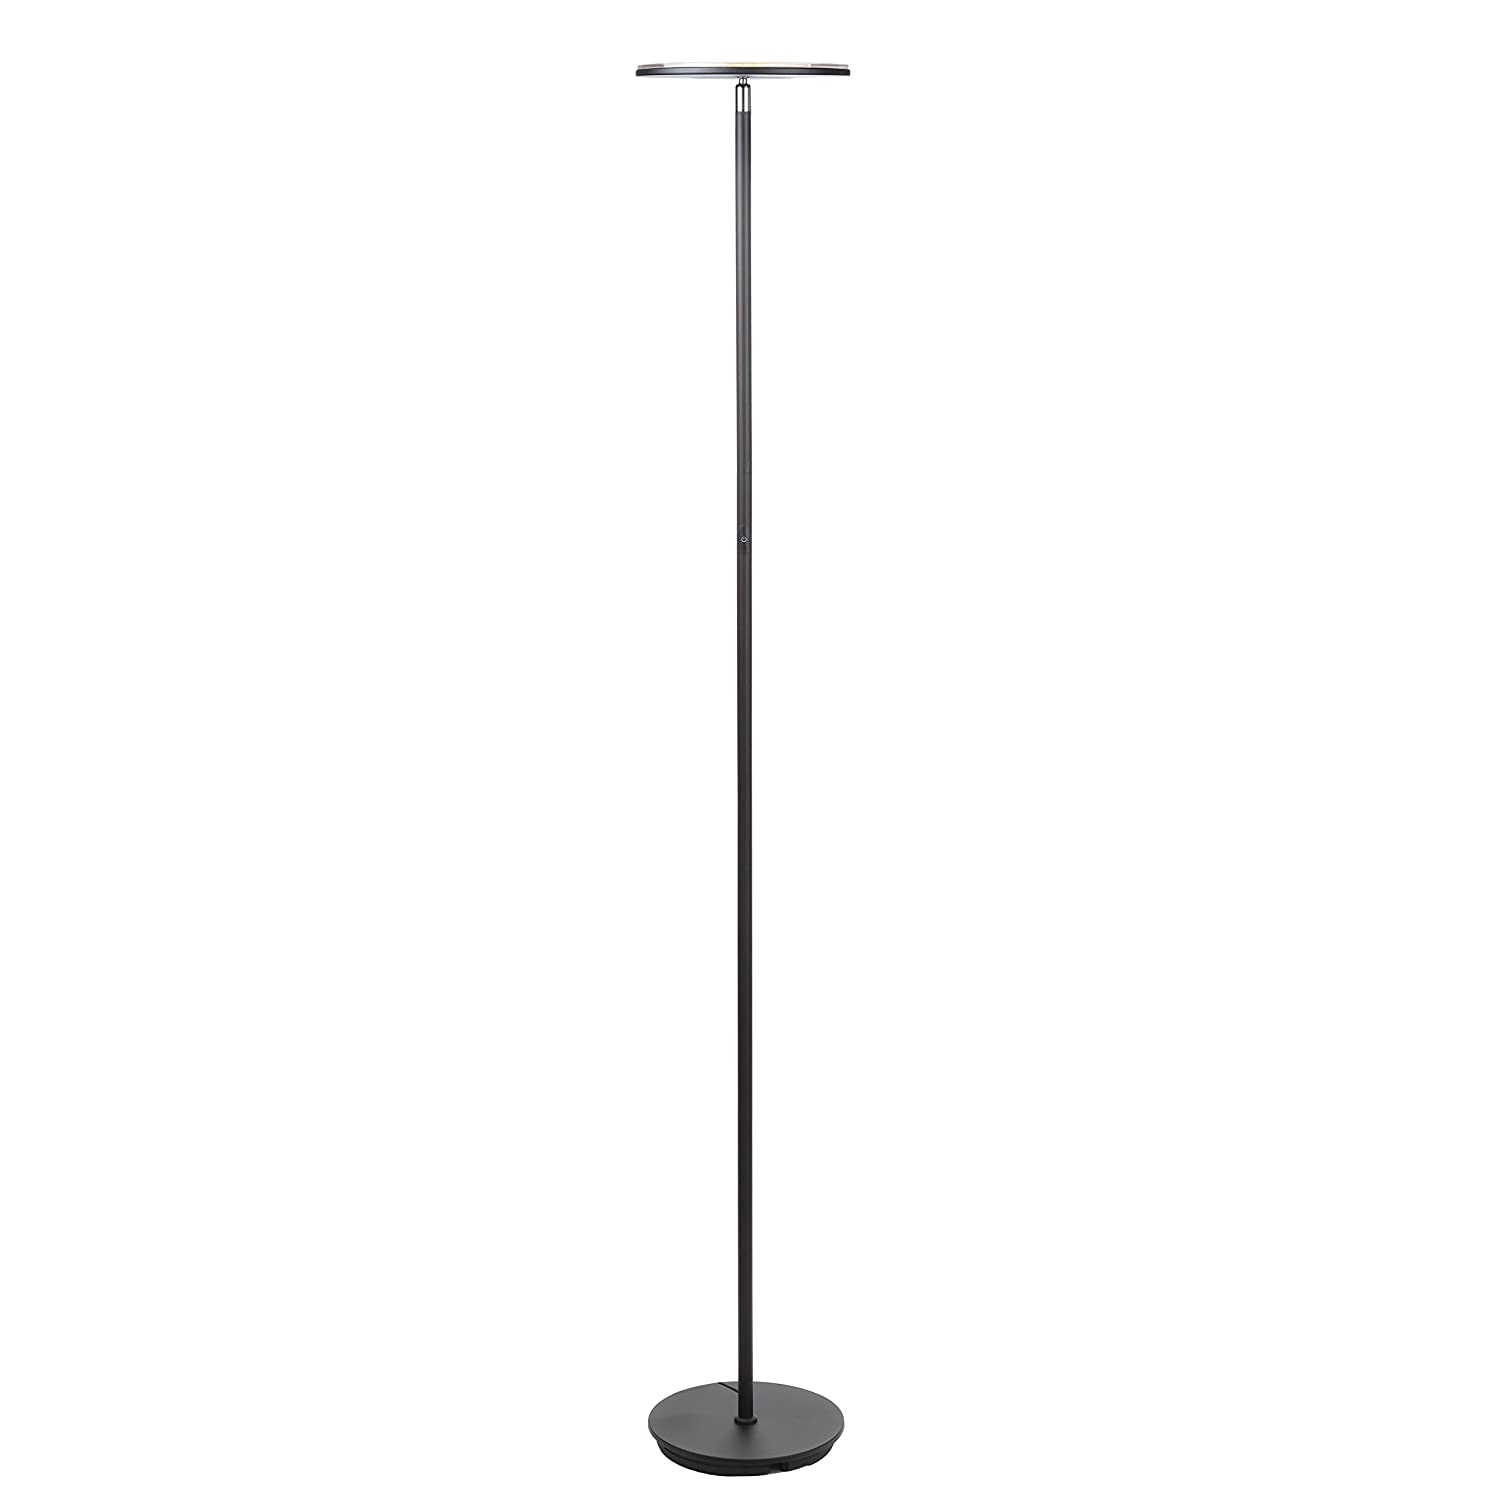 brightech sky led torchiere floor lamp energy saving dimmable adjustable lamp reading lamp modern tall standing pole uplight lamp light for living room